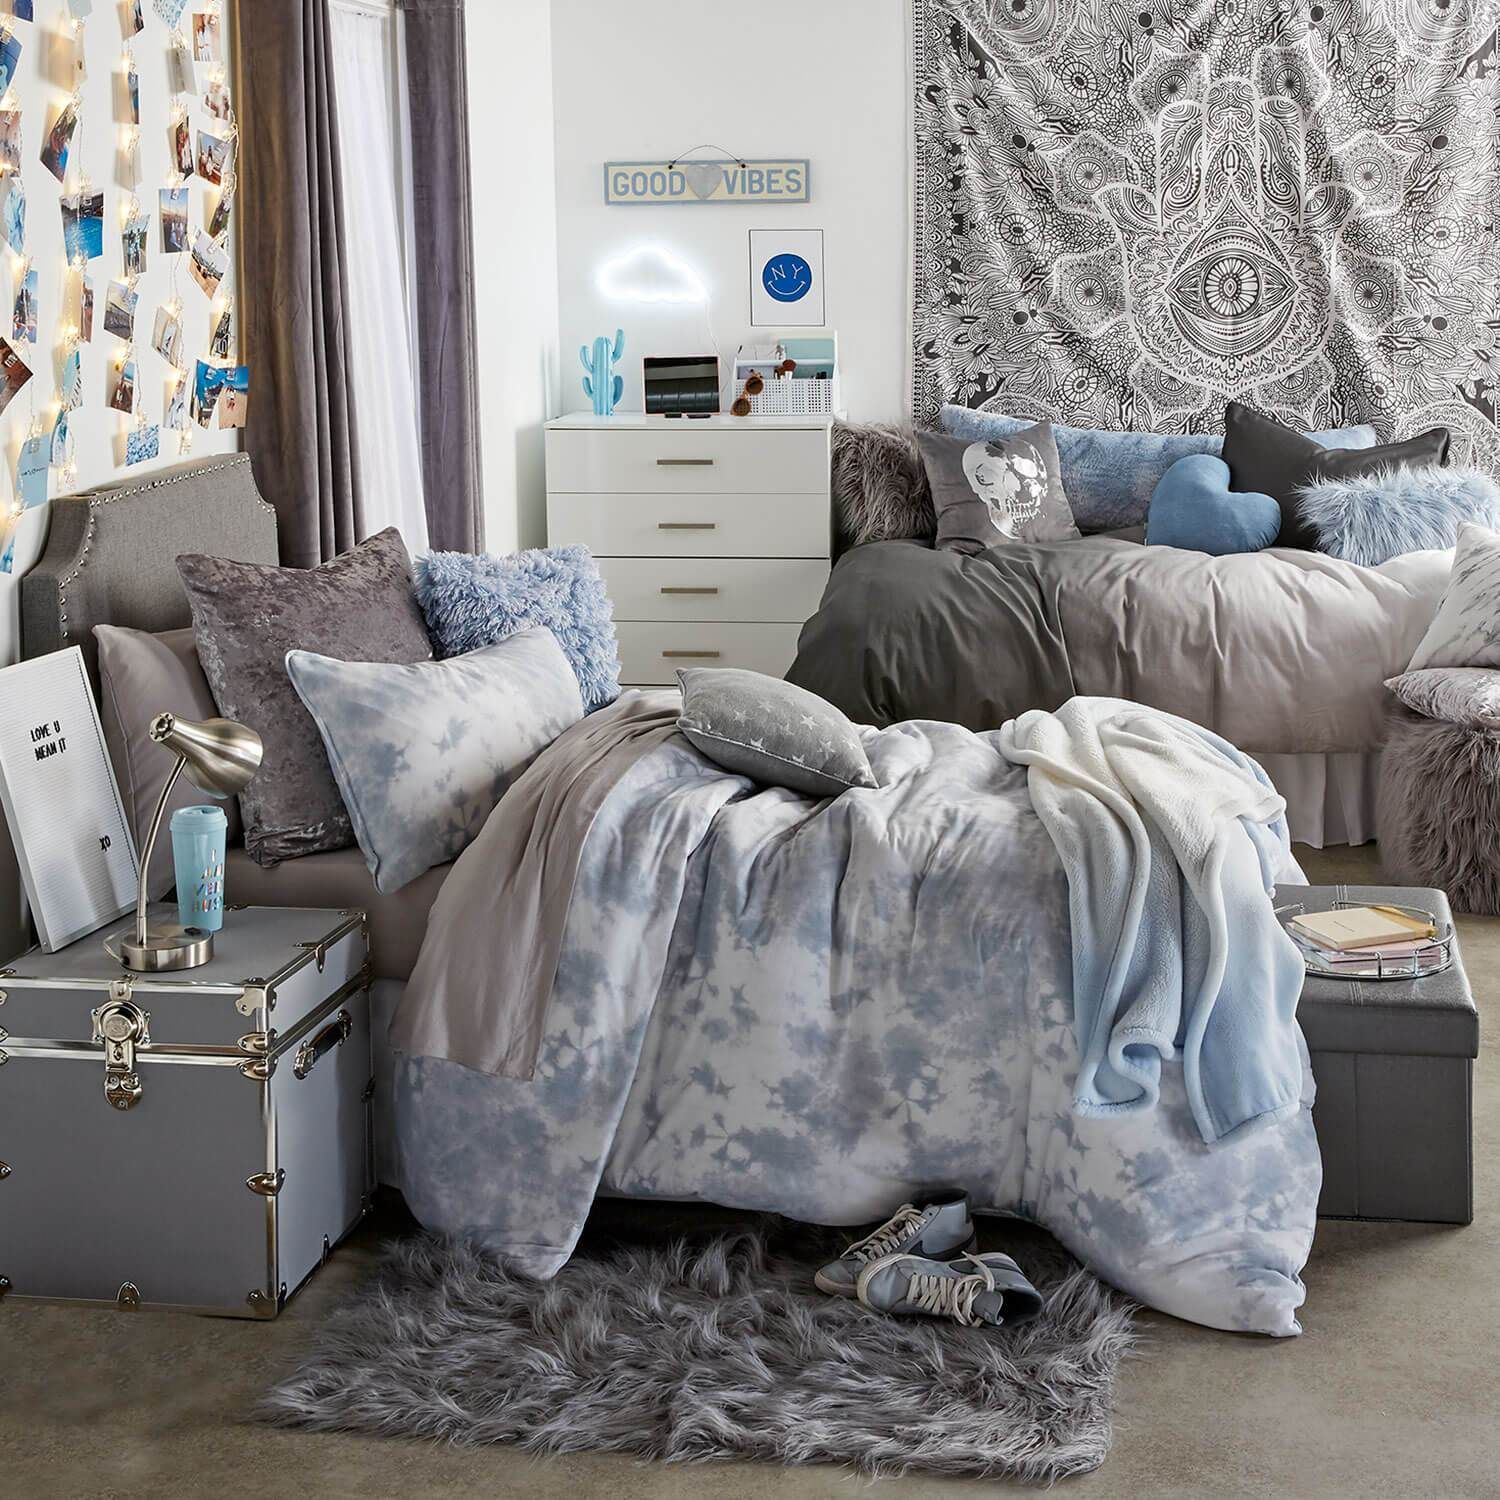 Dorm Room Ideas College Decor Inspiration Dormify